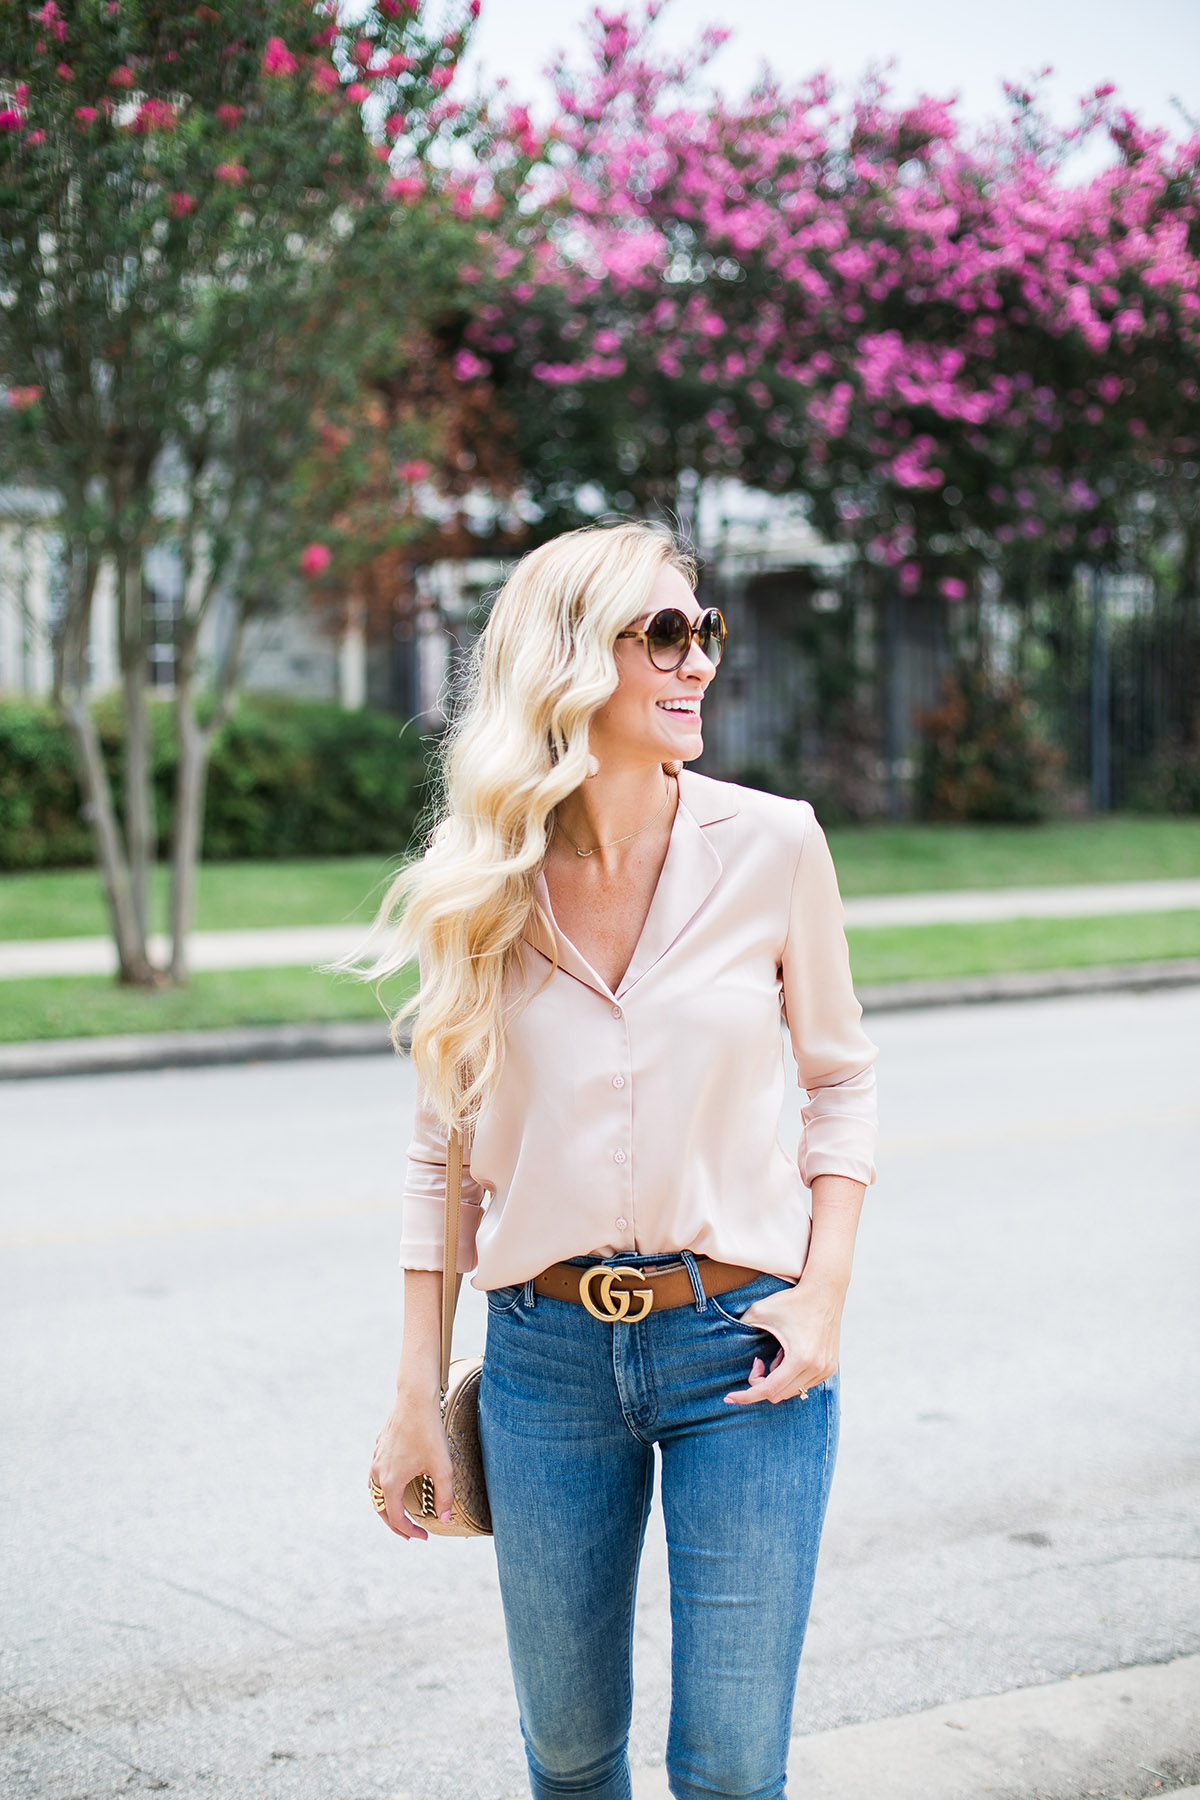 Blush Pajama Top | How to Wear the Pajama Top Trend